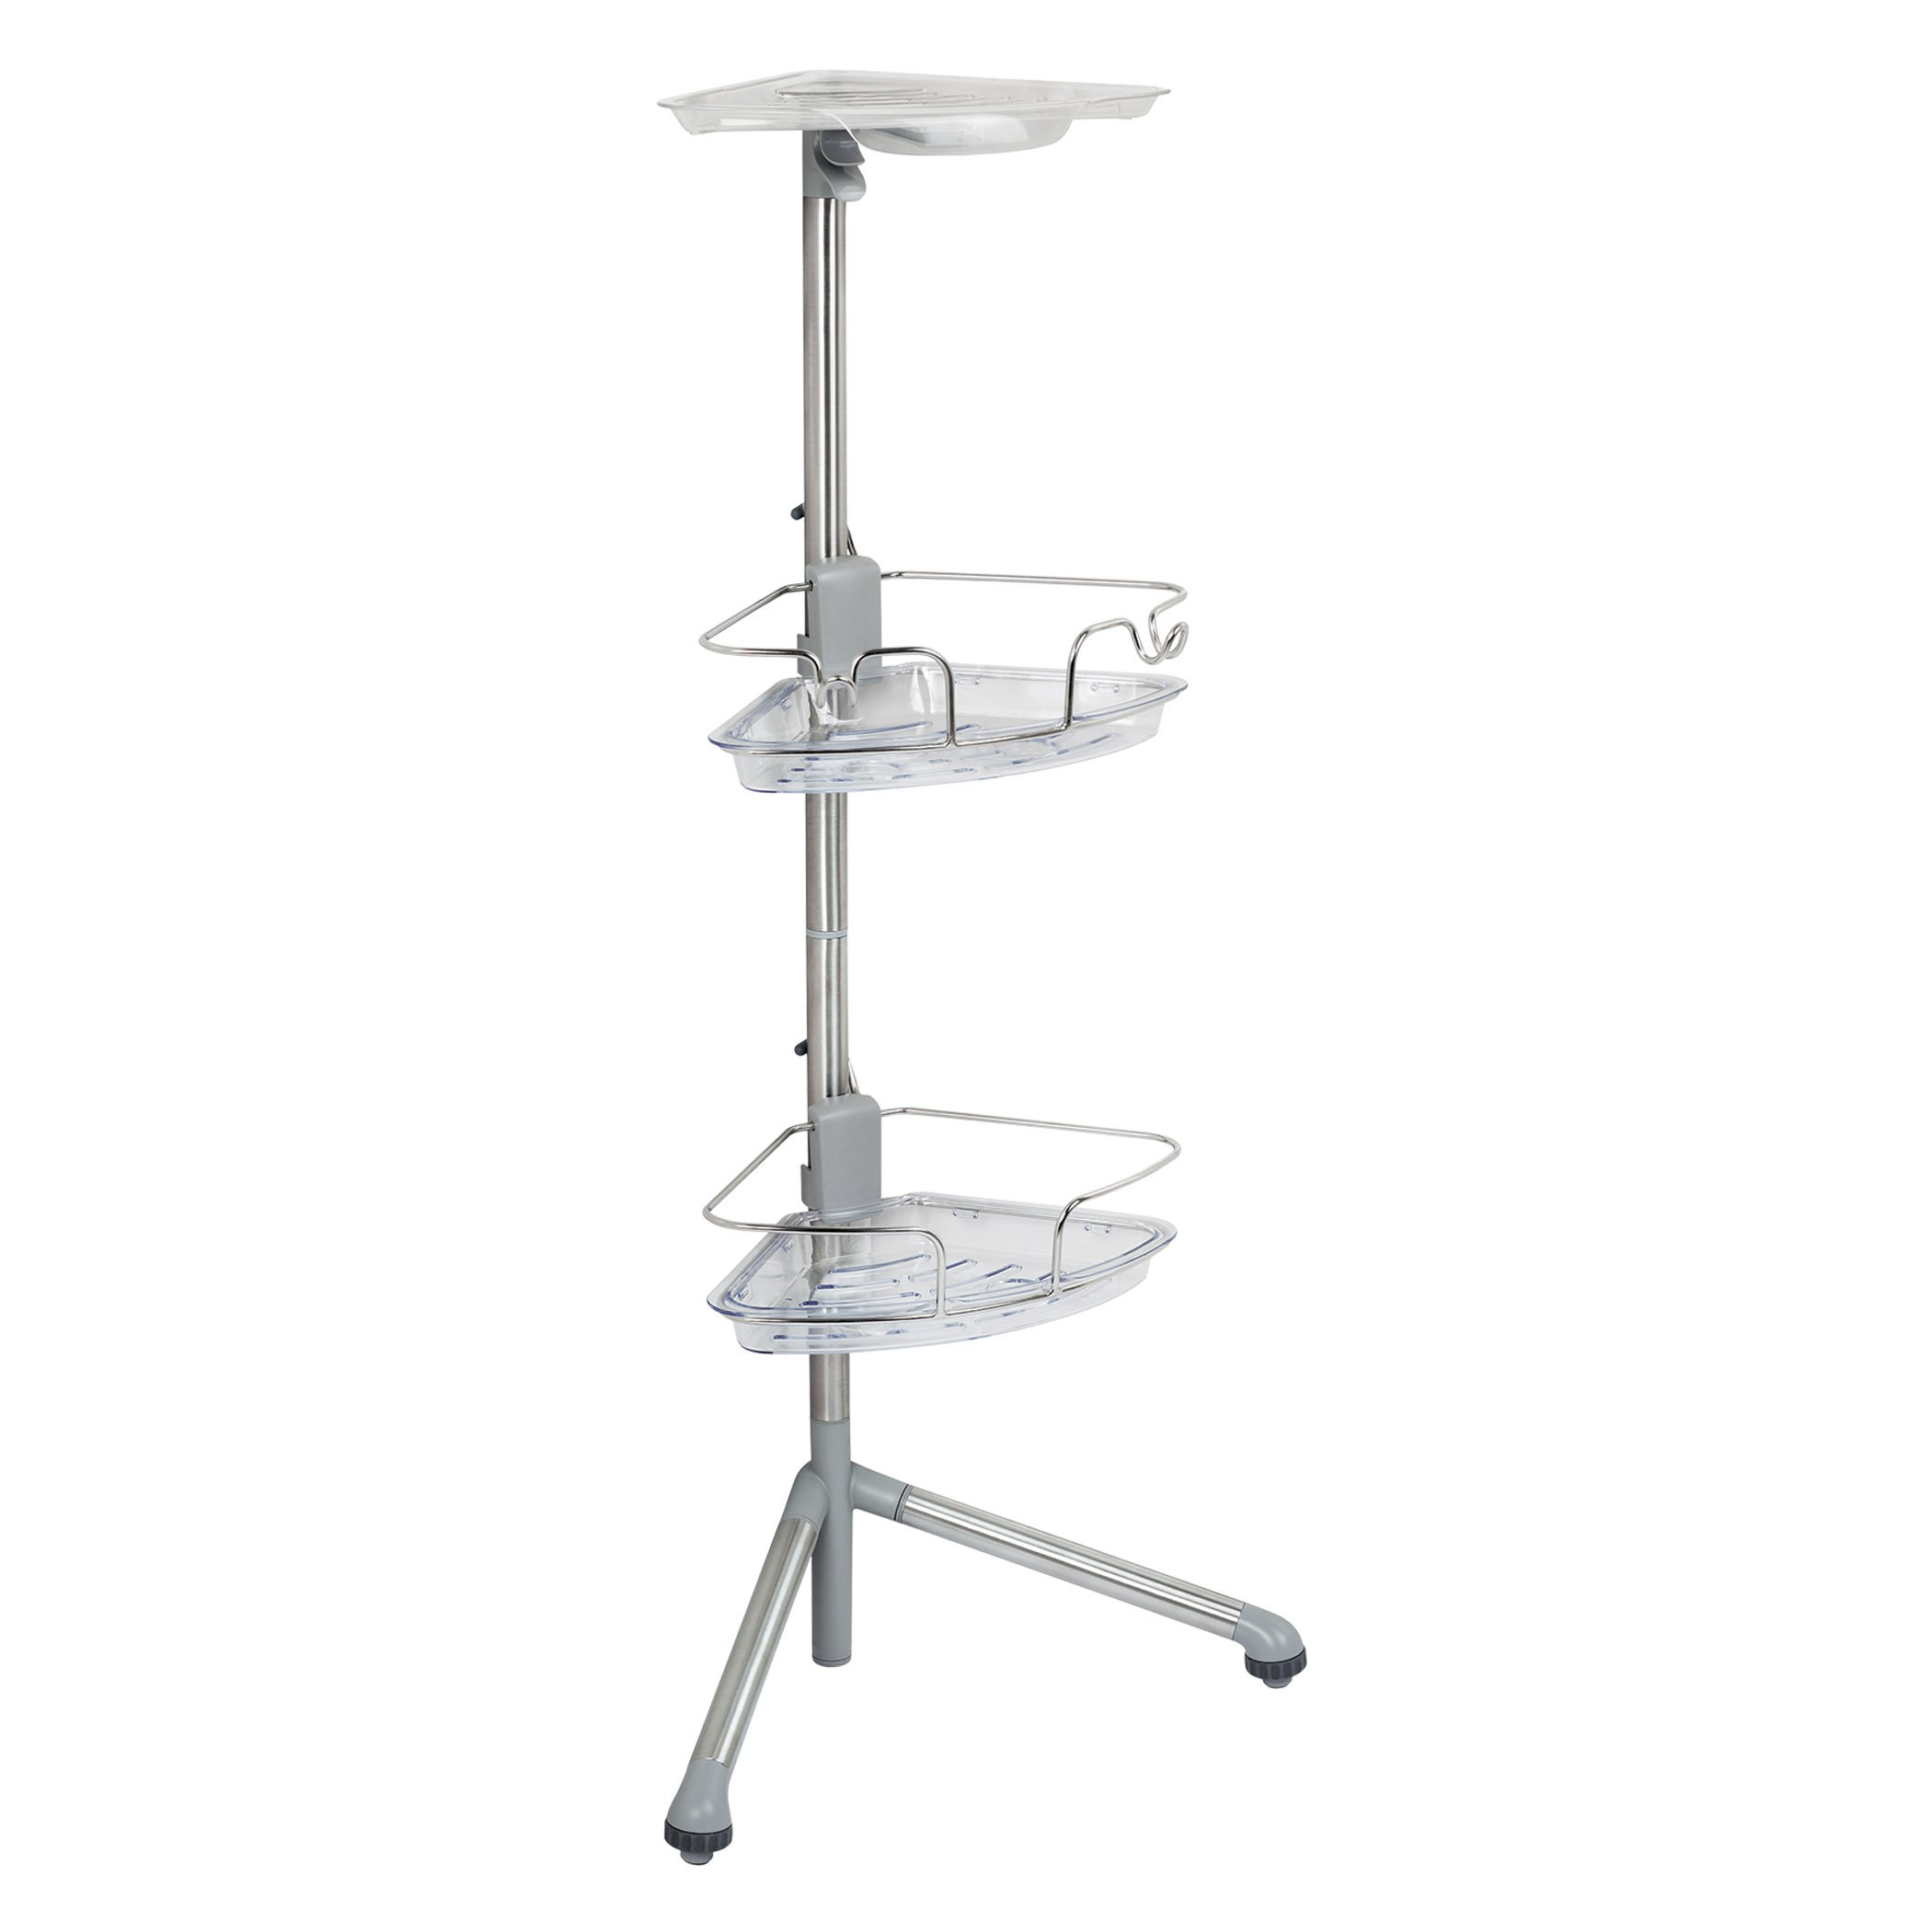 OXO Good Grips Stainless Steel Corner Standing Shower Caddy, 3 ft Tall